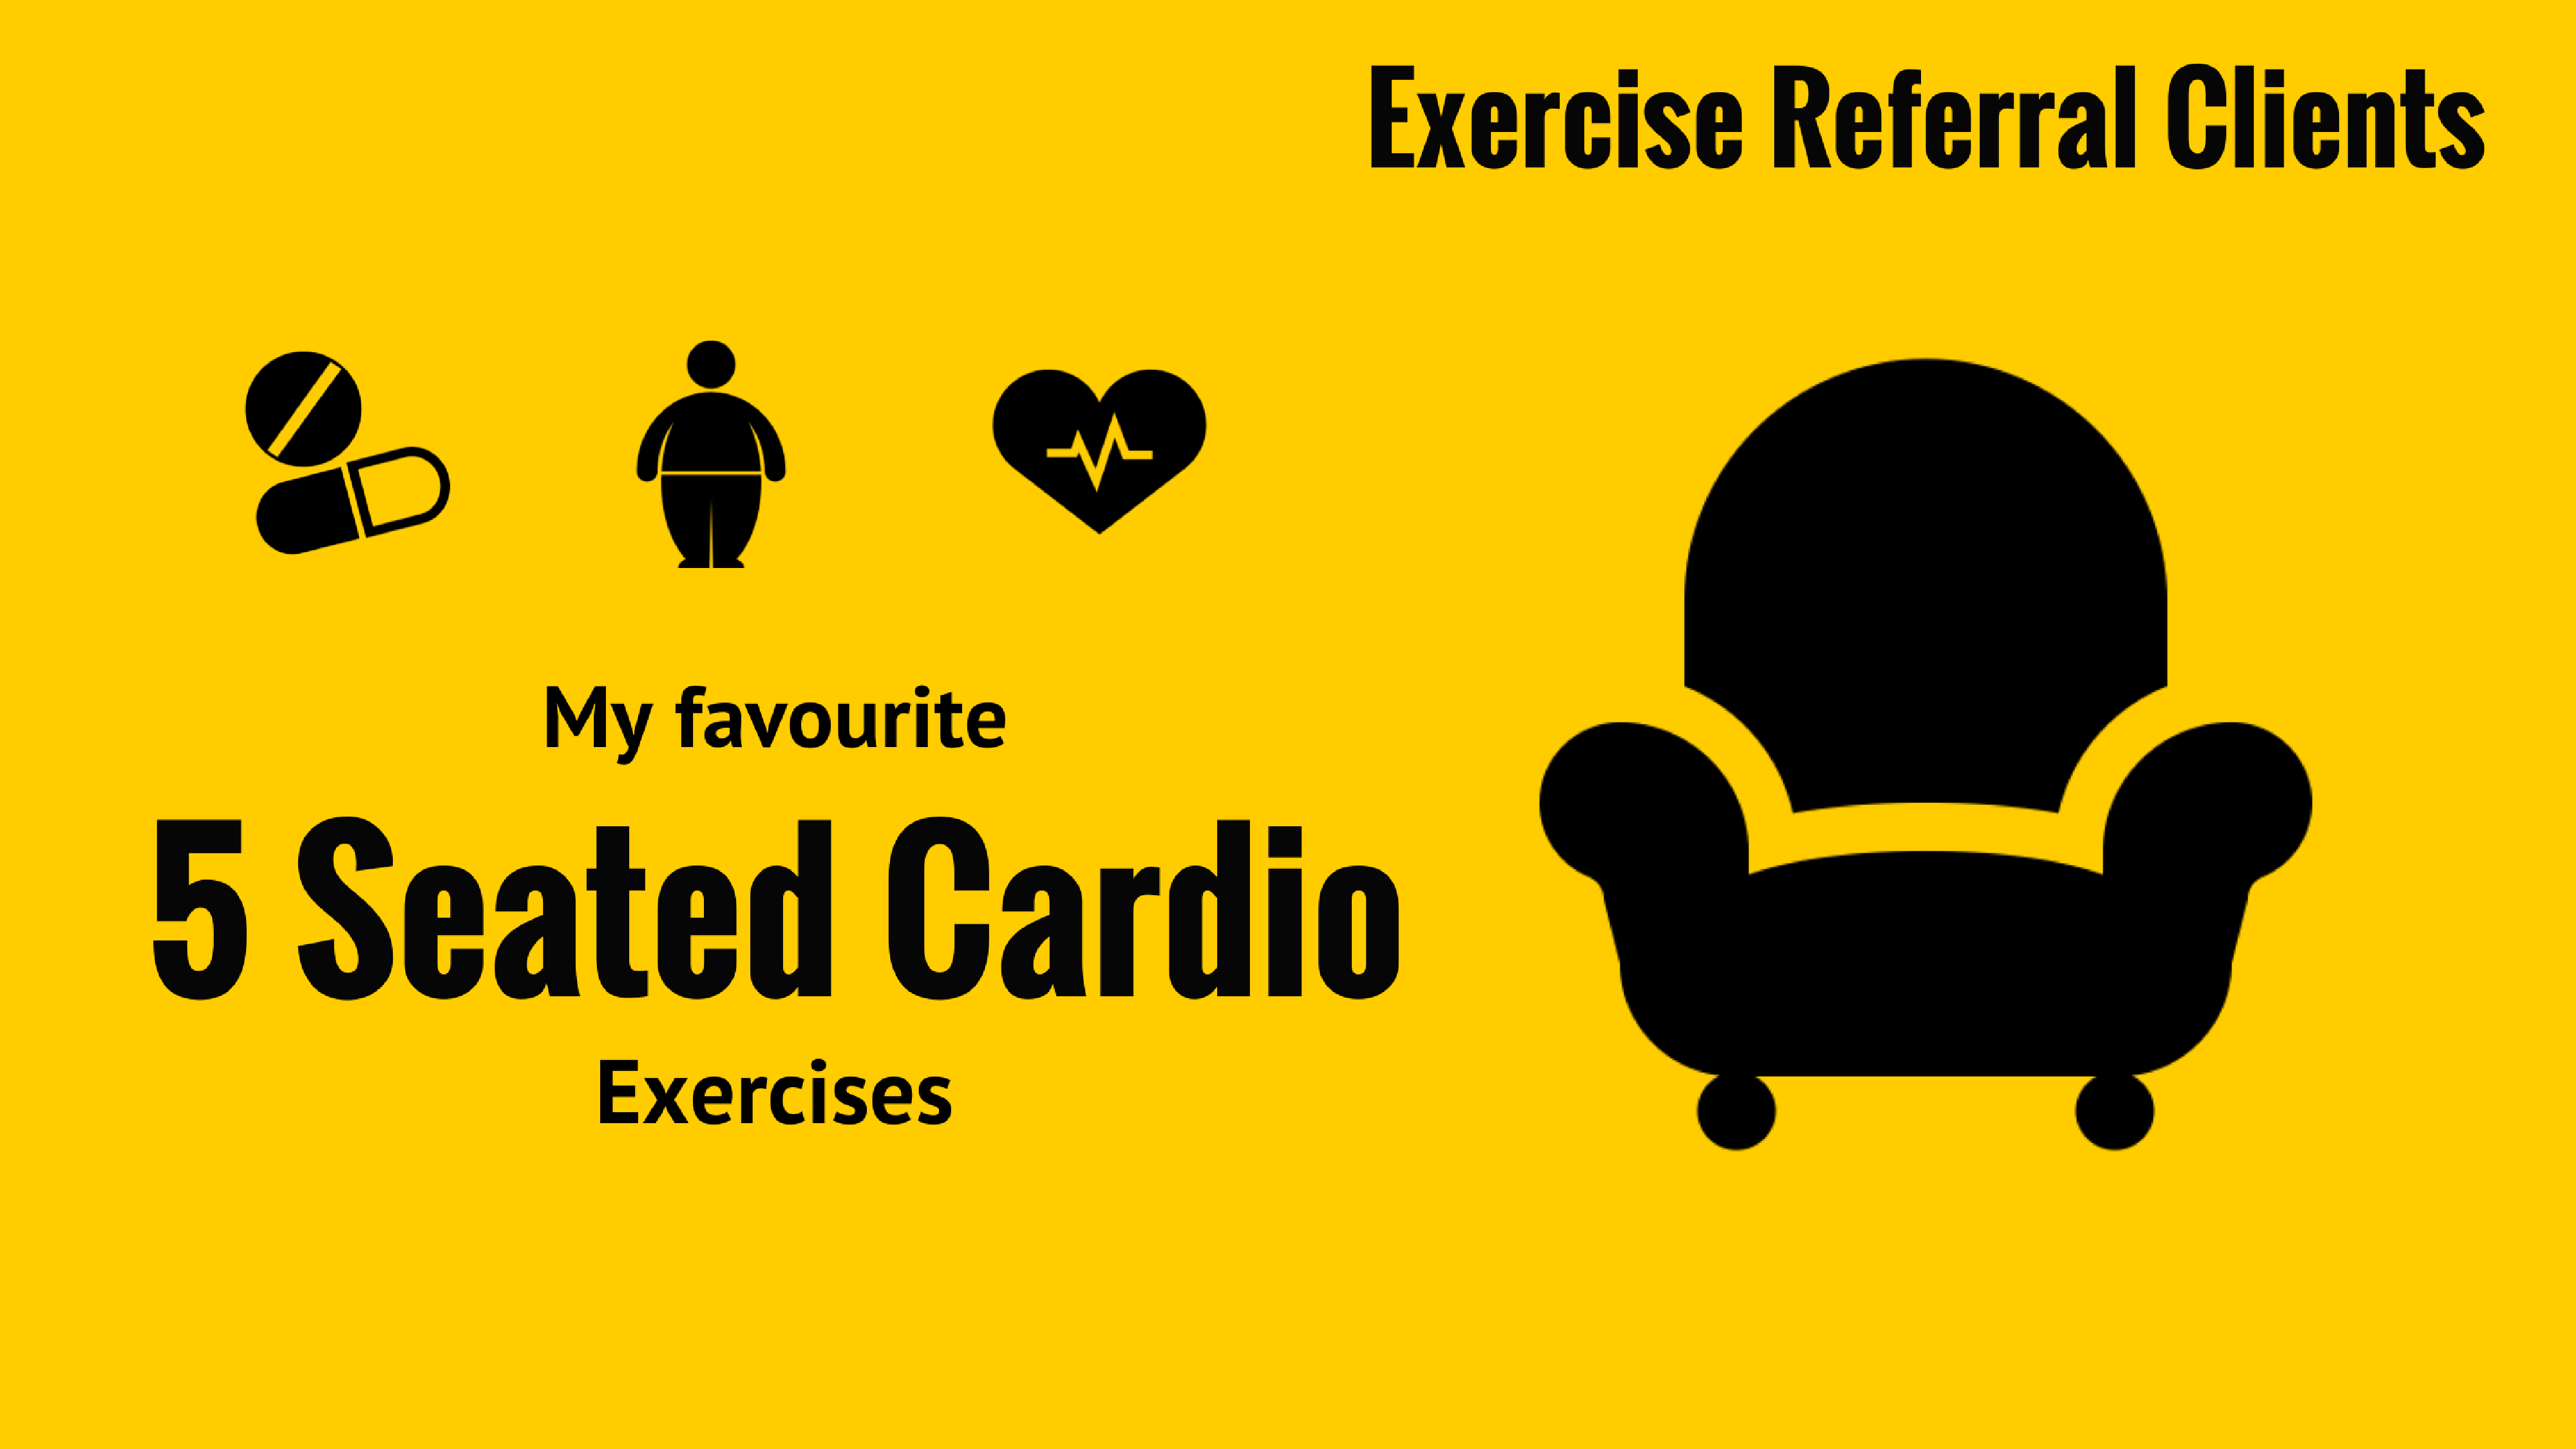 [Exercise Referral Clients] 5 Seated Cardio Exercises